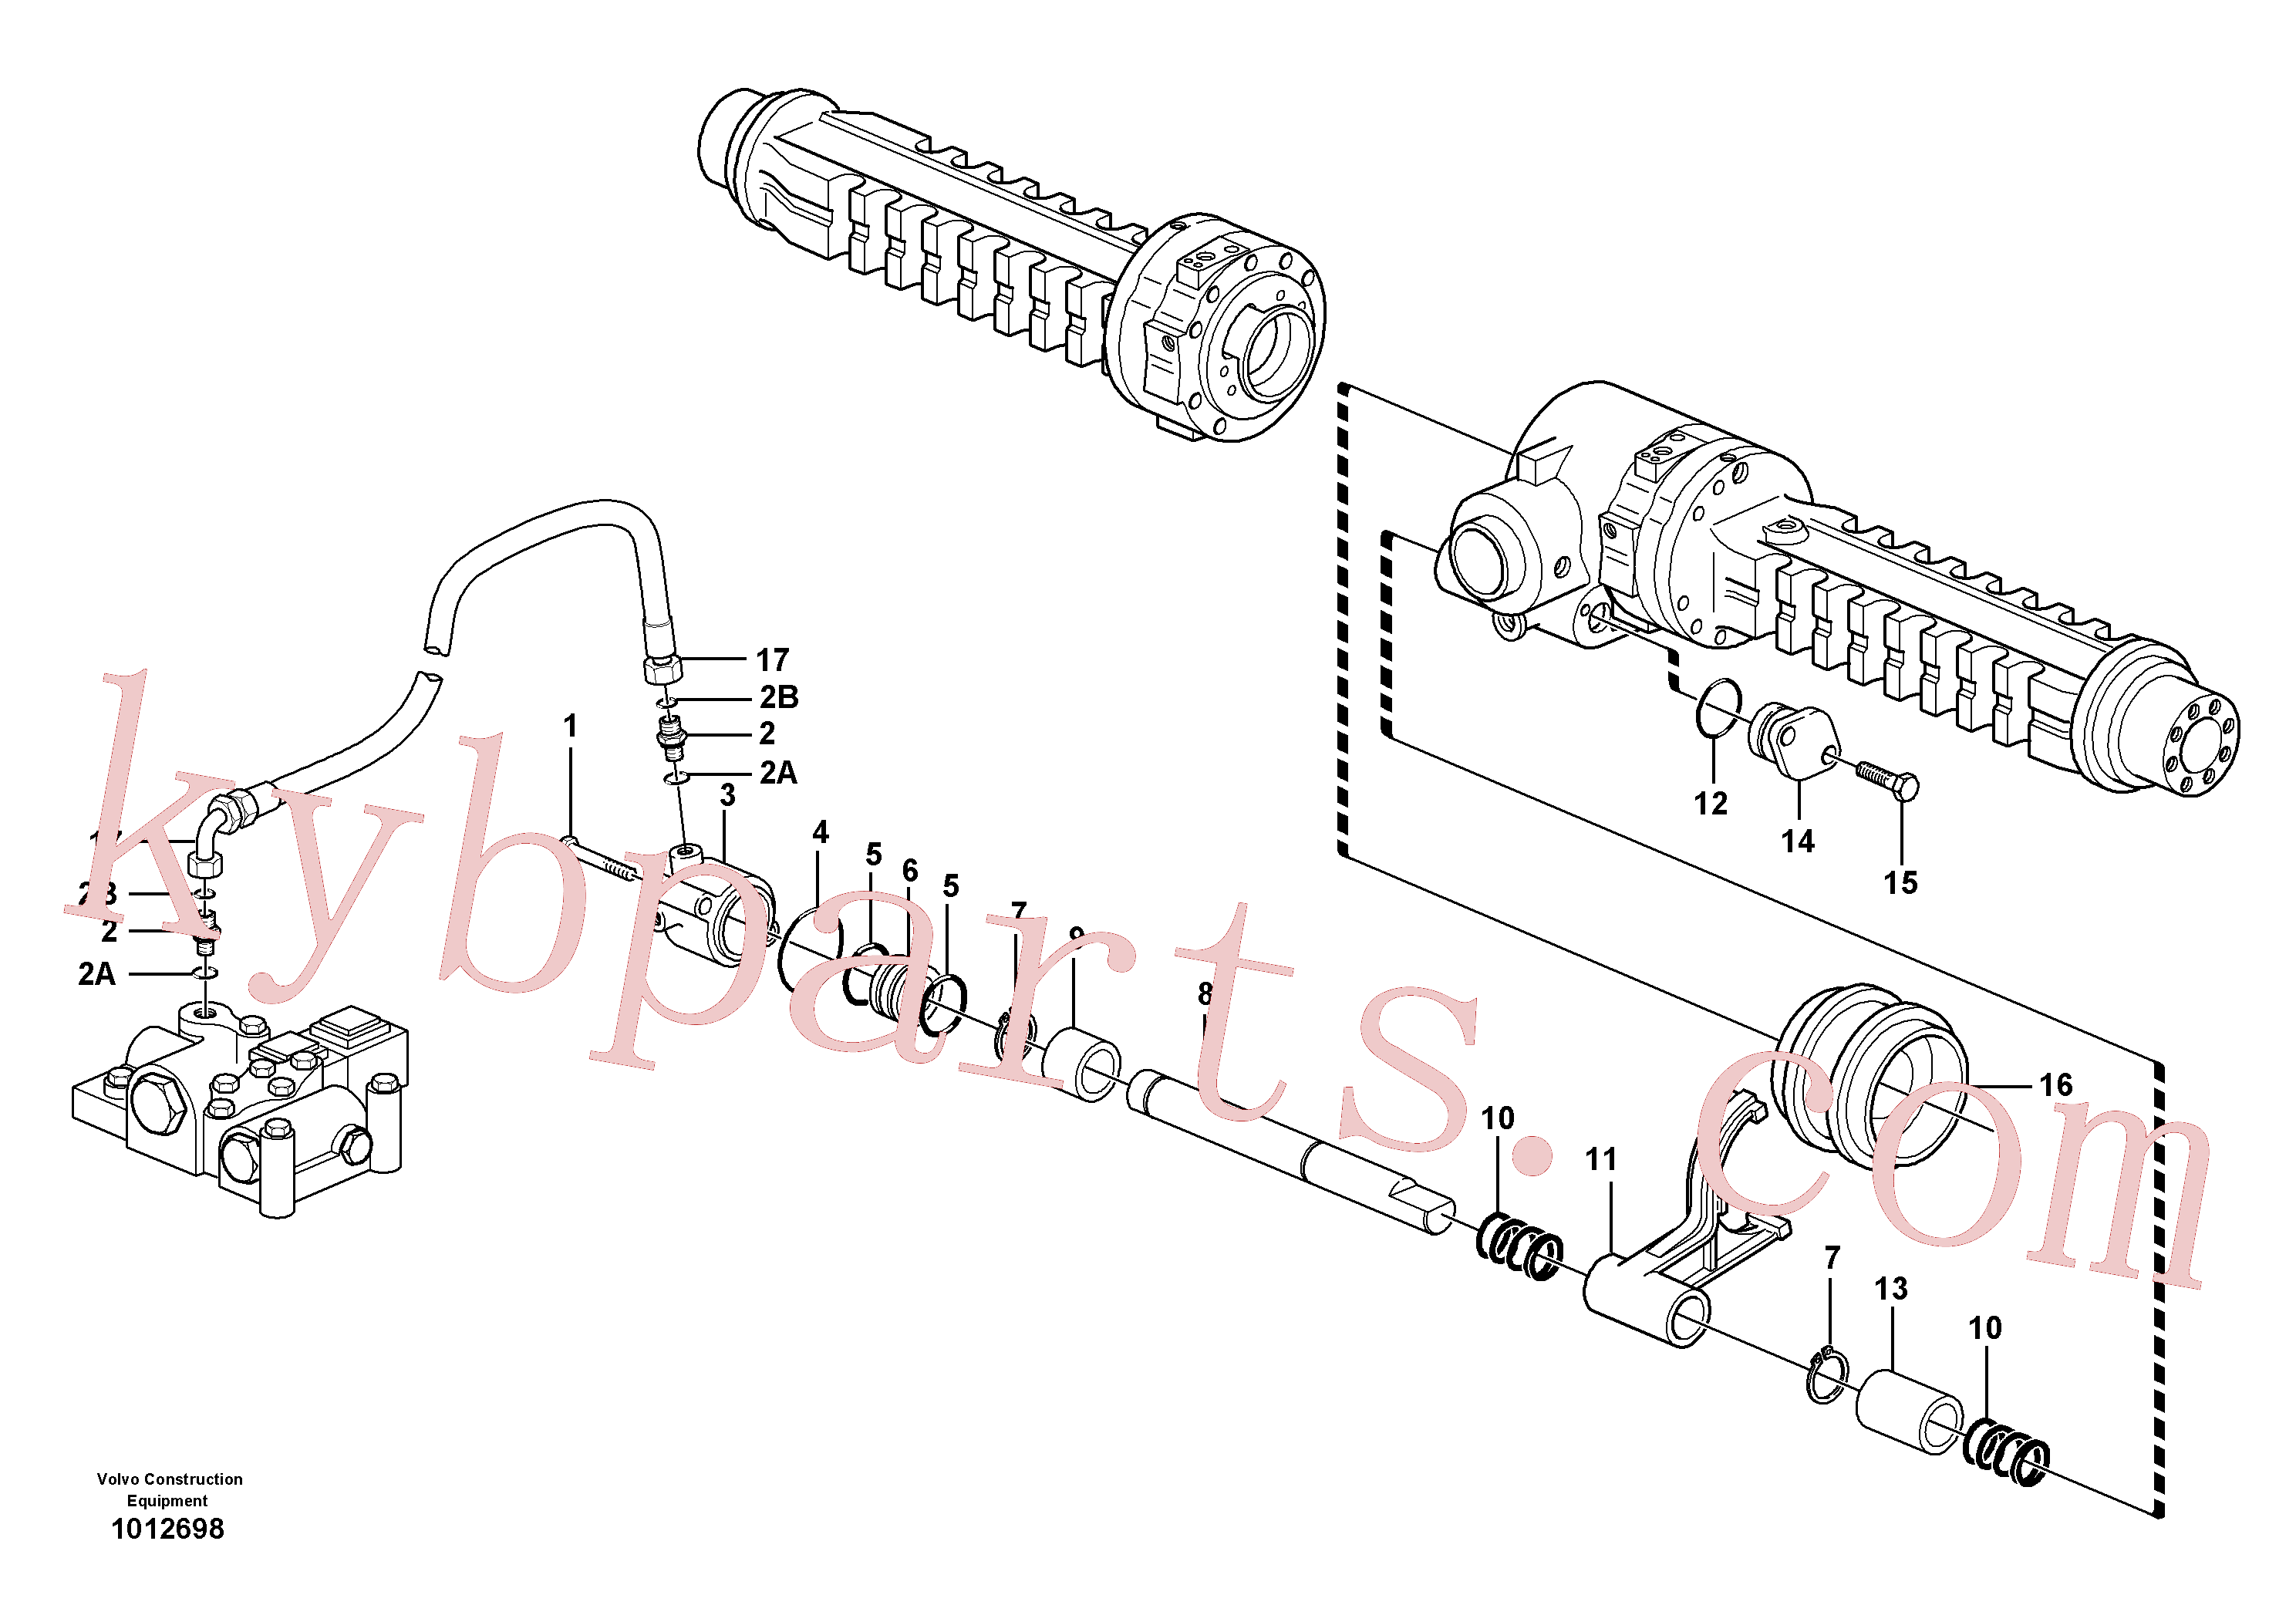 VOE11709326 for Volvo Differential lock(1012698 assembly)